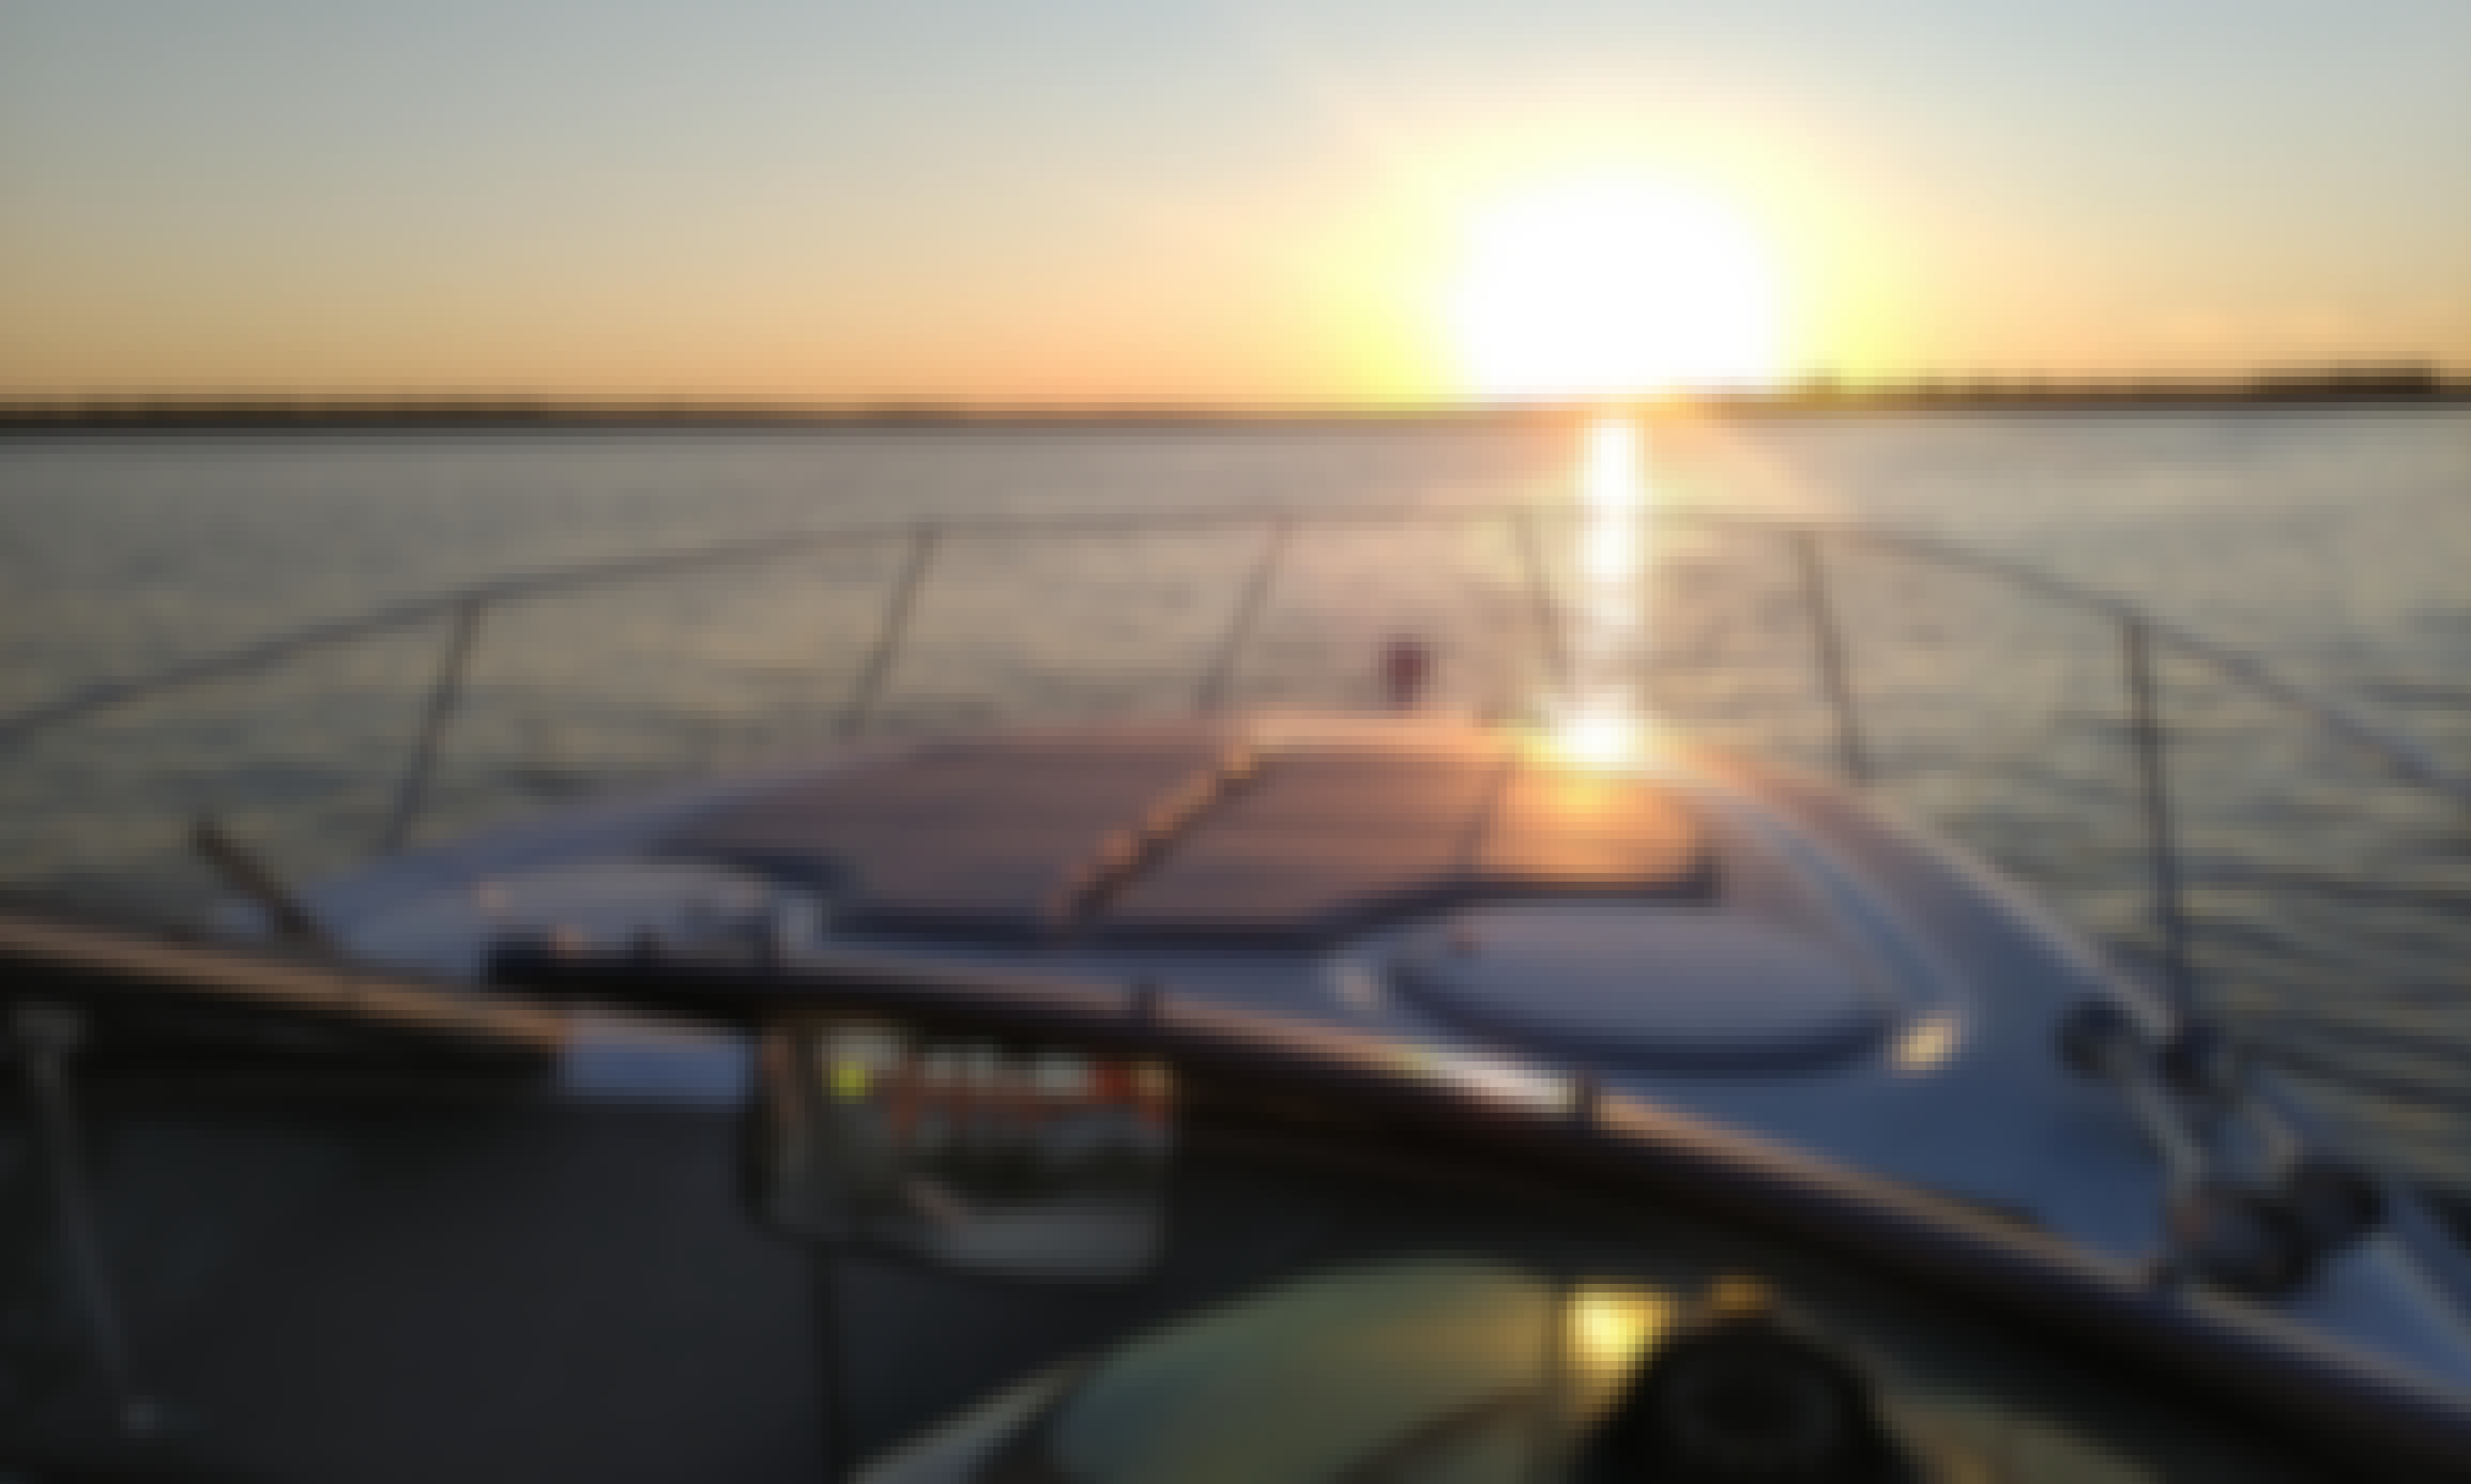 35' Four Winns Vista Cabin Cruiser on Lake Lewisville